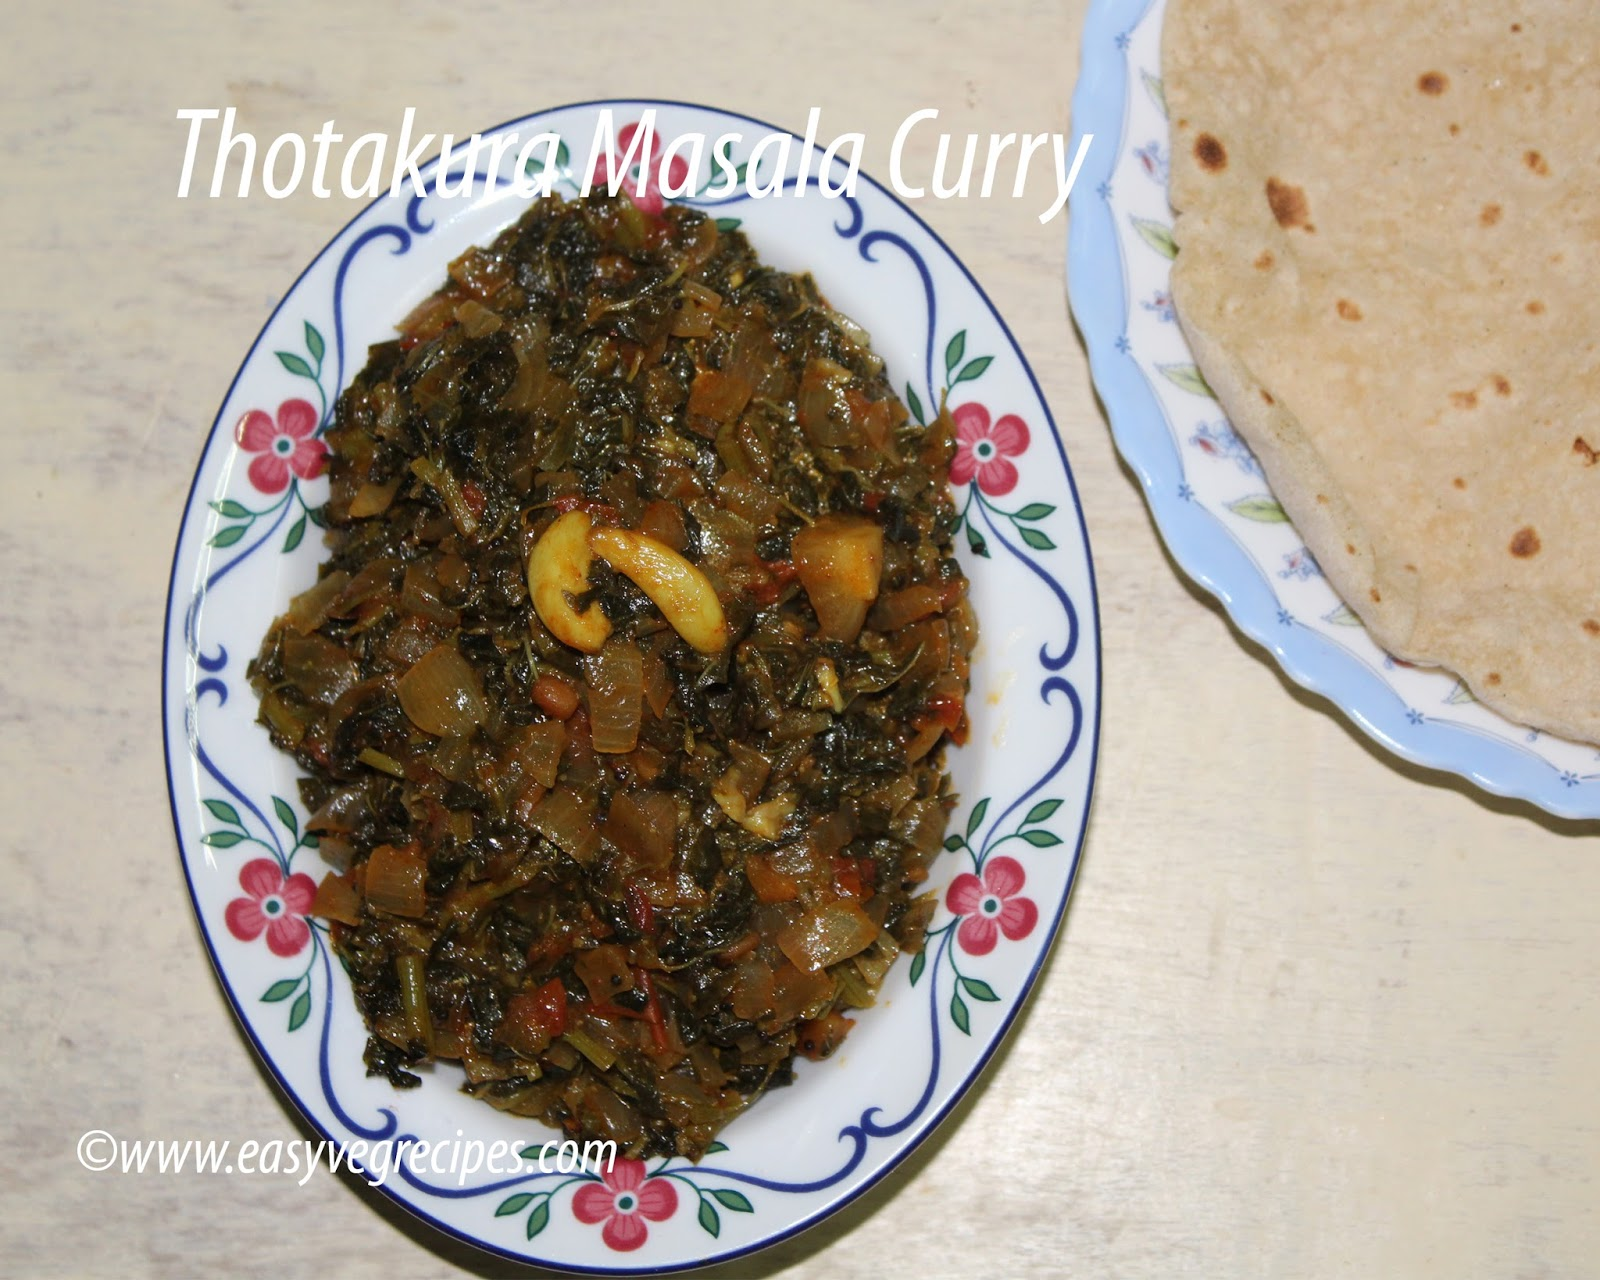 Thotakura Masala Curry